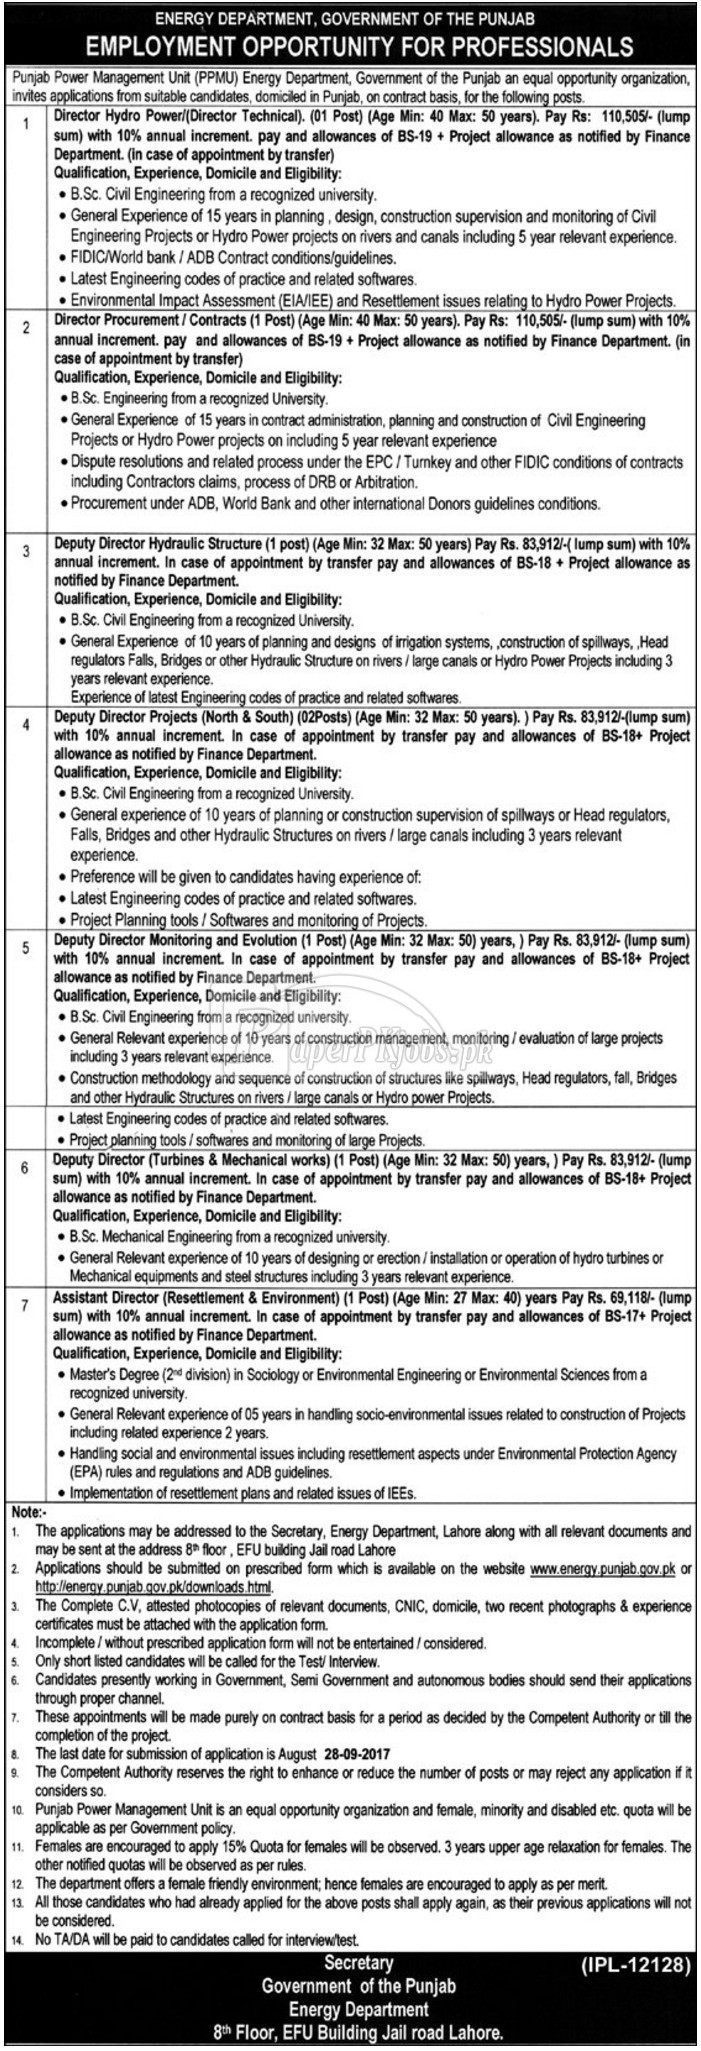 Energy Department Government of Punjab Jobs 2017